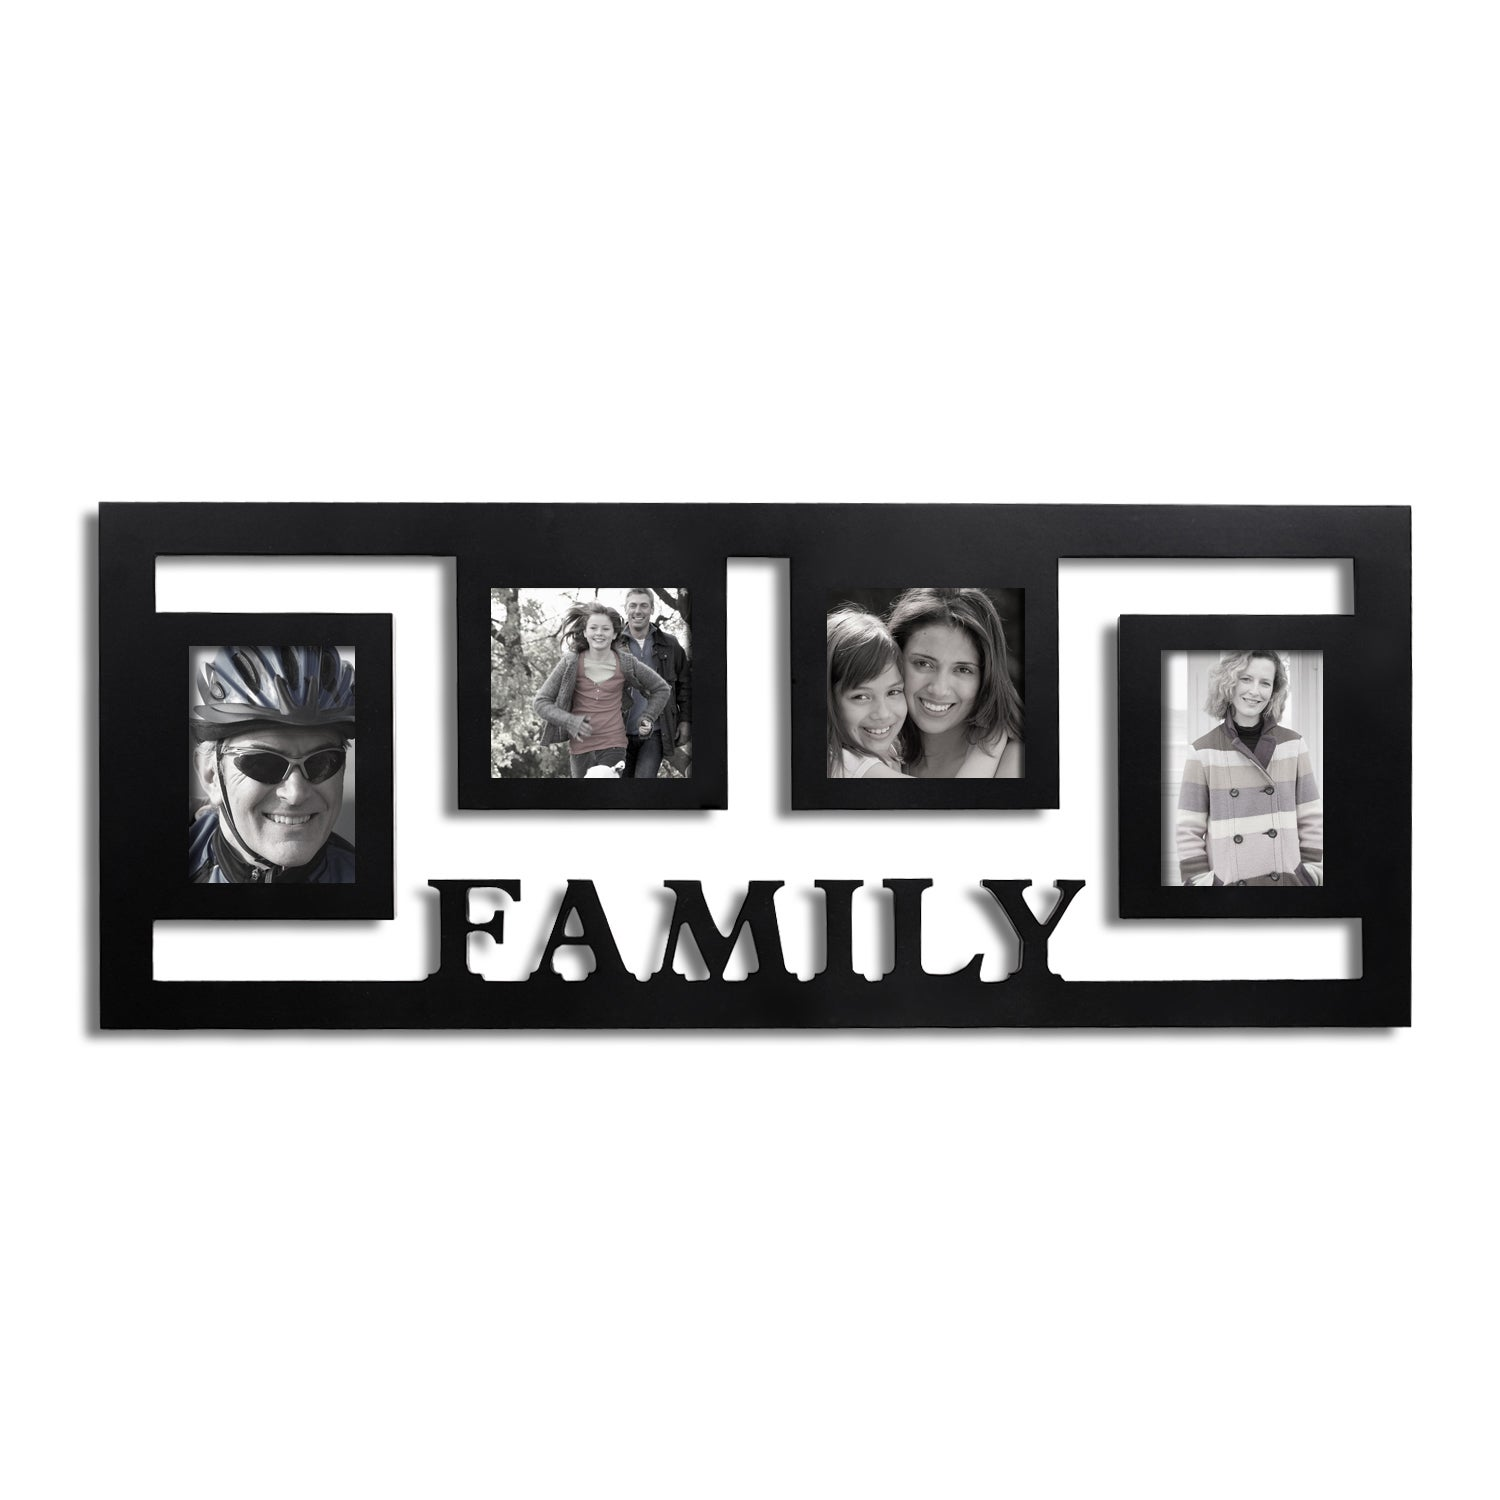 Adeco Decorative Black Wood Wall Hanging Family Floating Collage 3 5x5 4x4 Photo Frame With 4 Openings Overstock 9064262